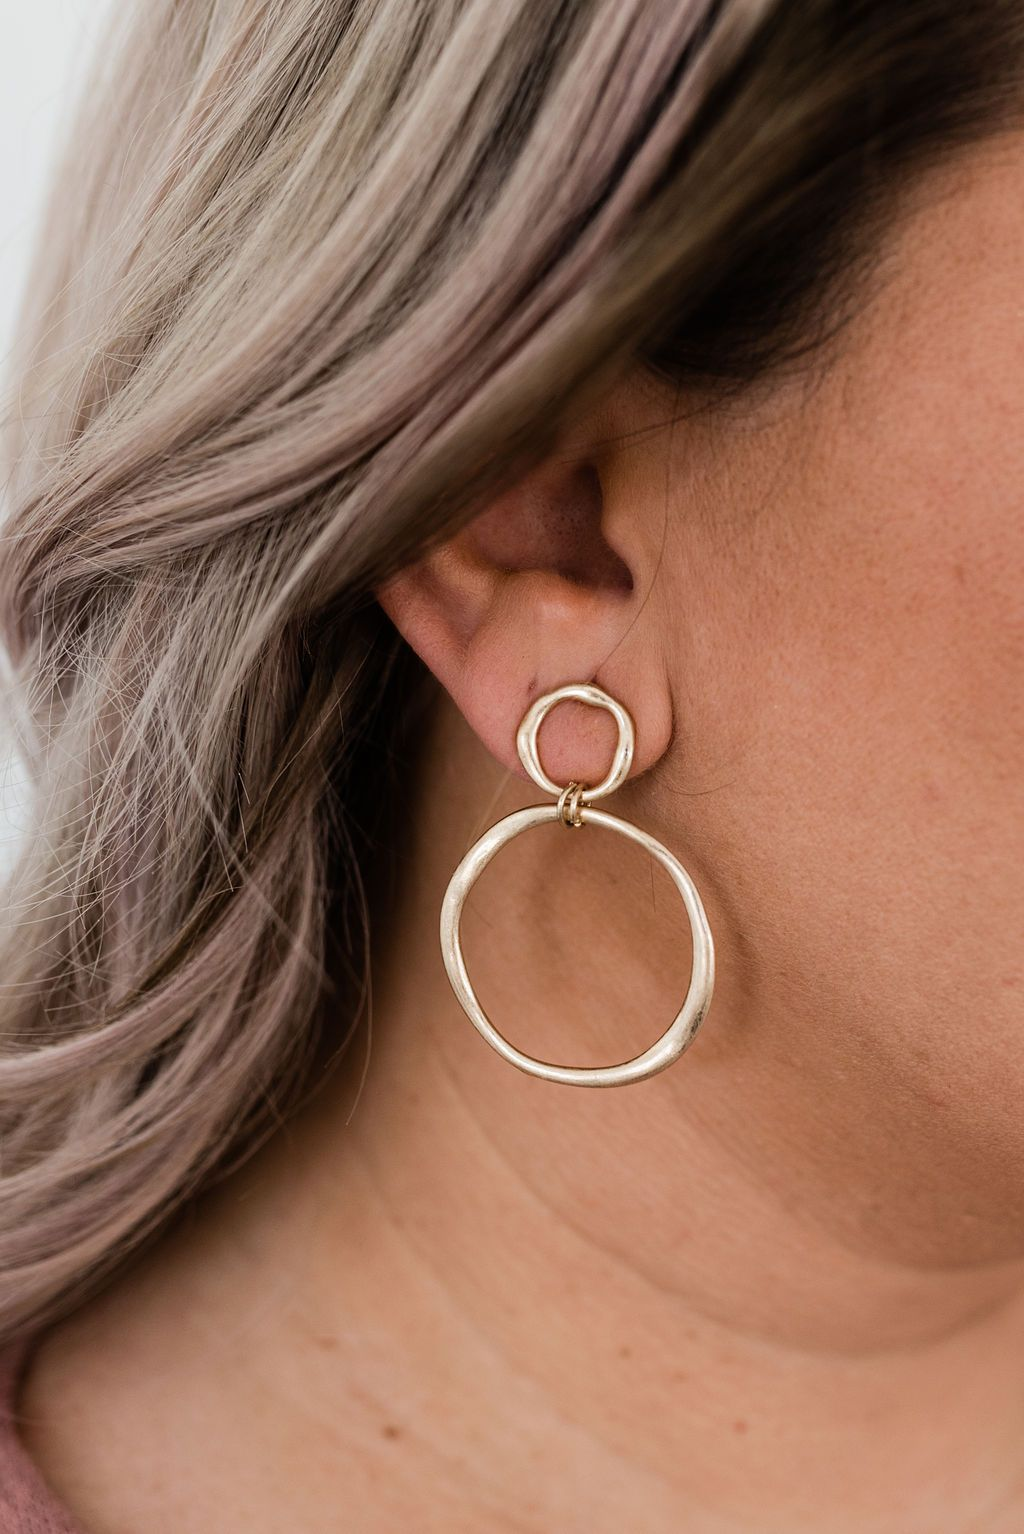 Hammered Metal Double Circle Earrings in Gold - Boutique 1780